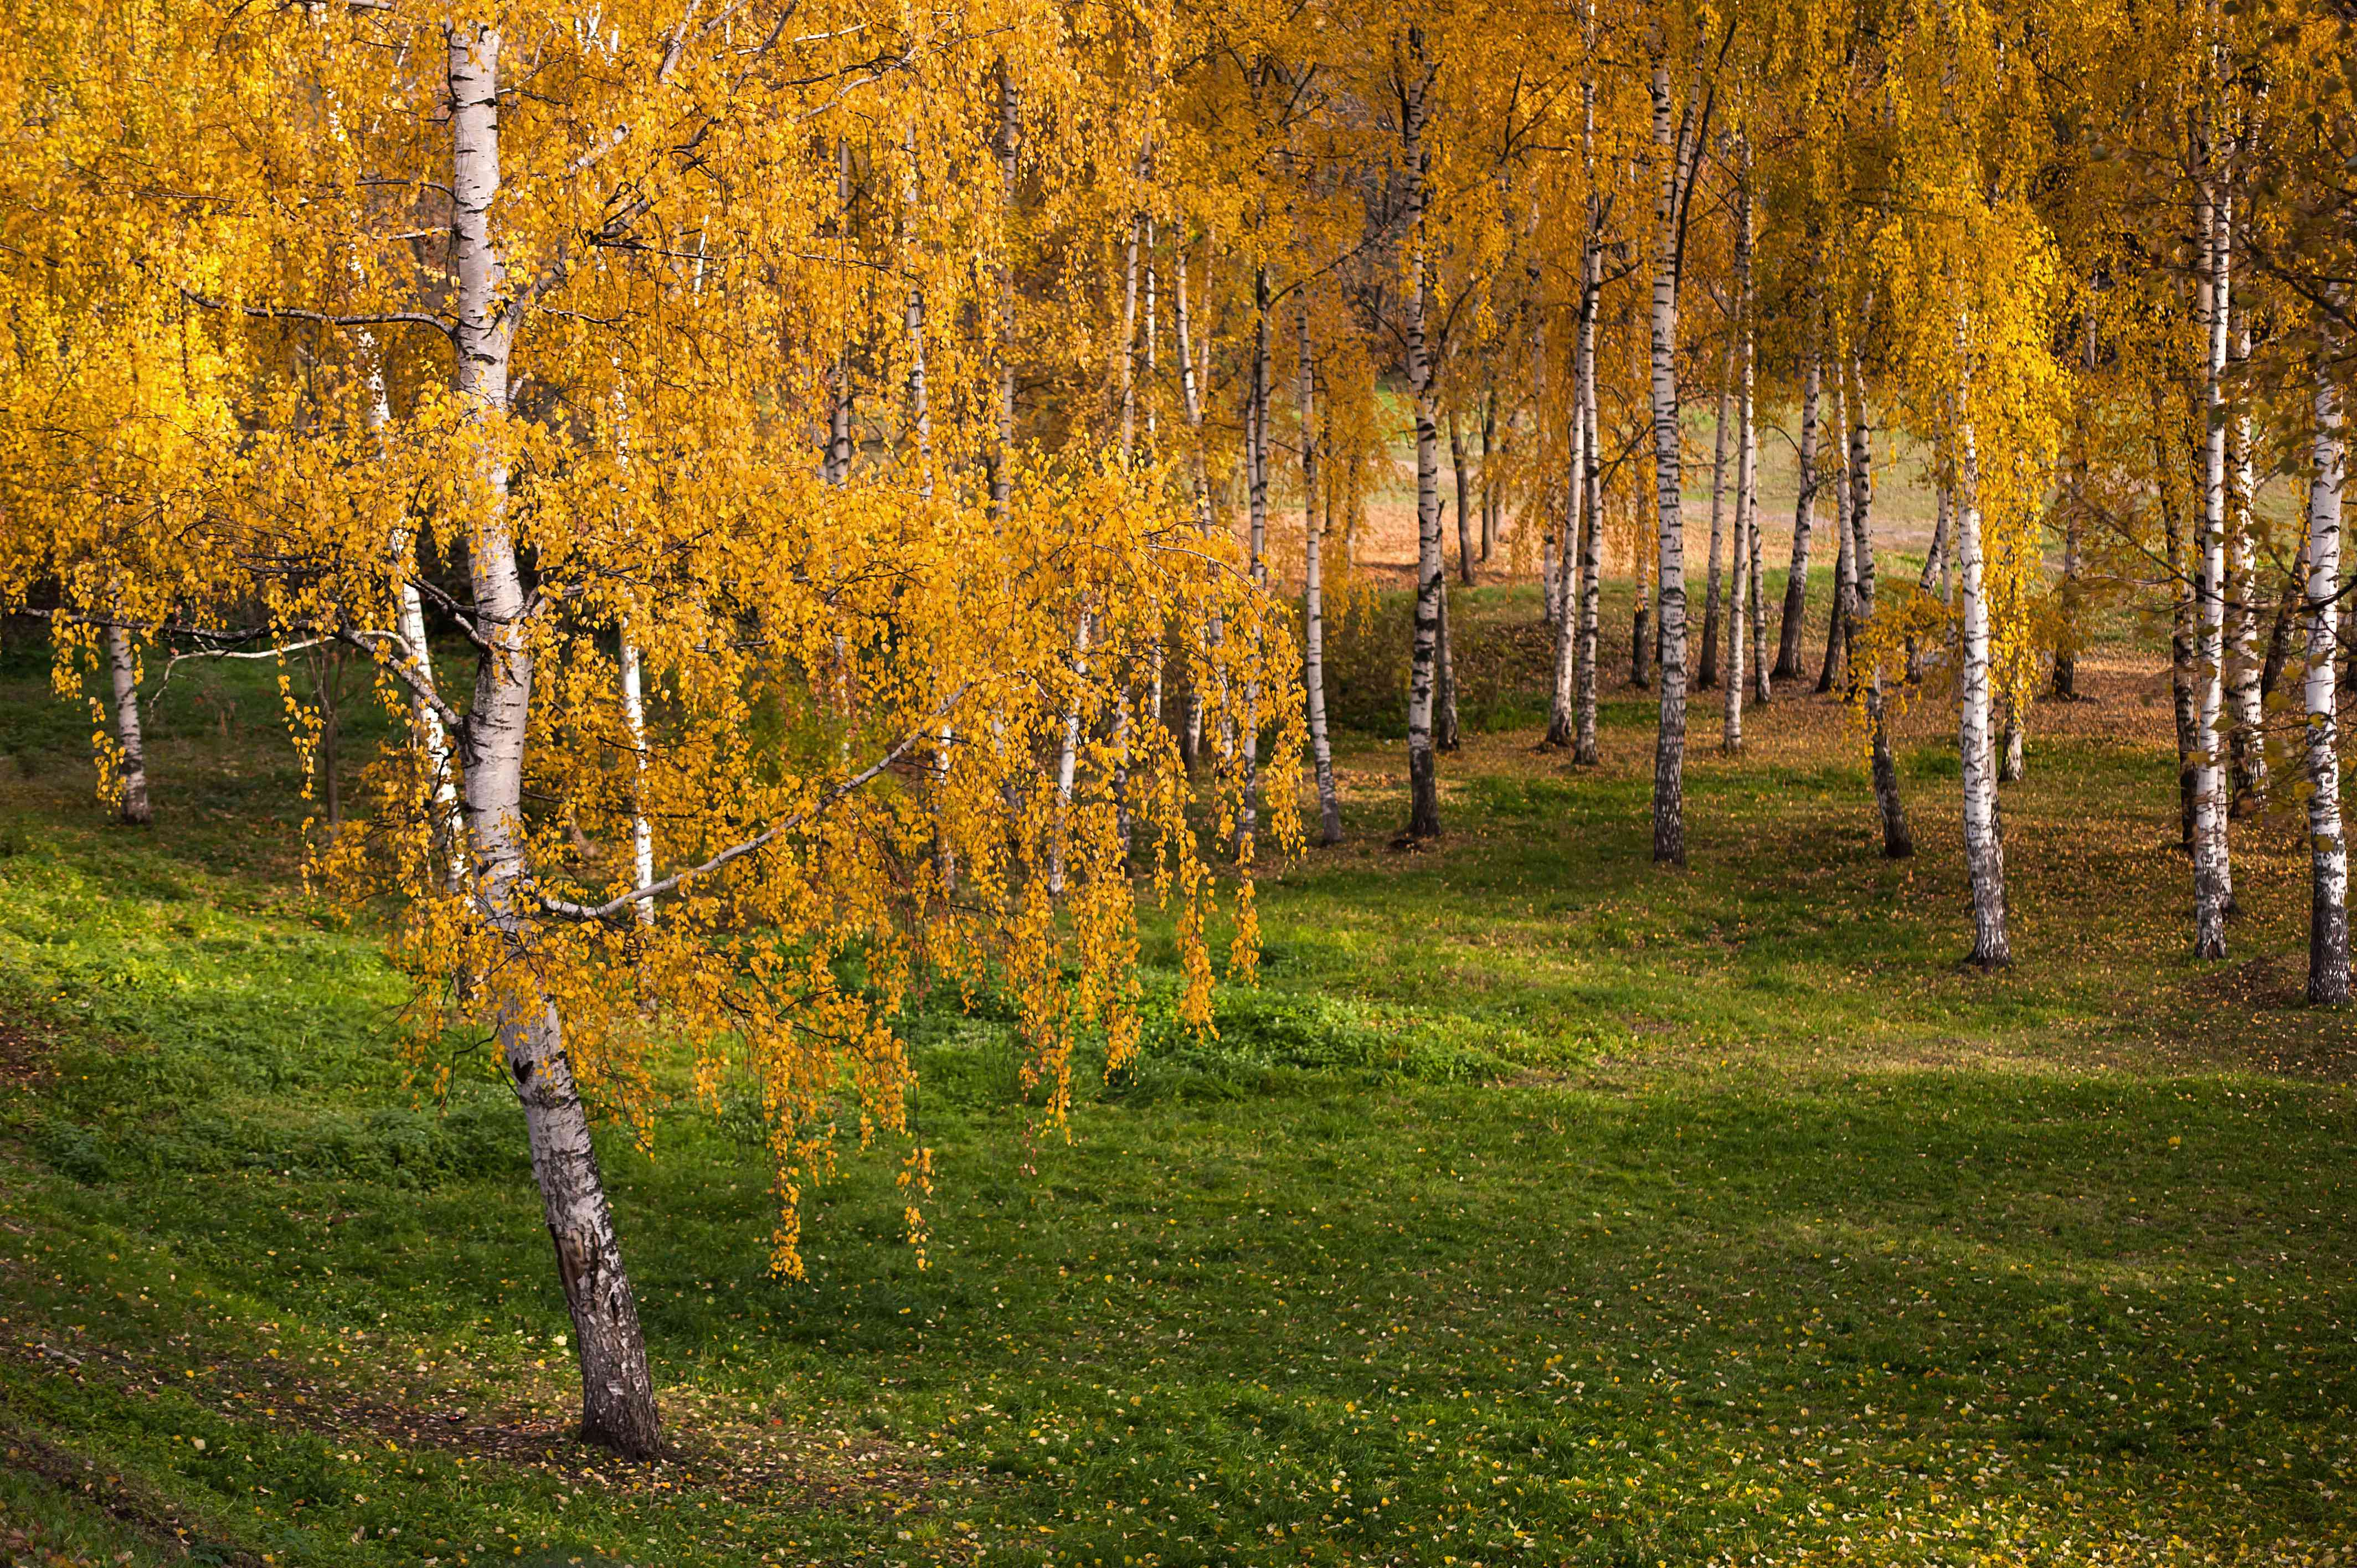 Silver birth trees with yellow drooping leaves in green meadow